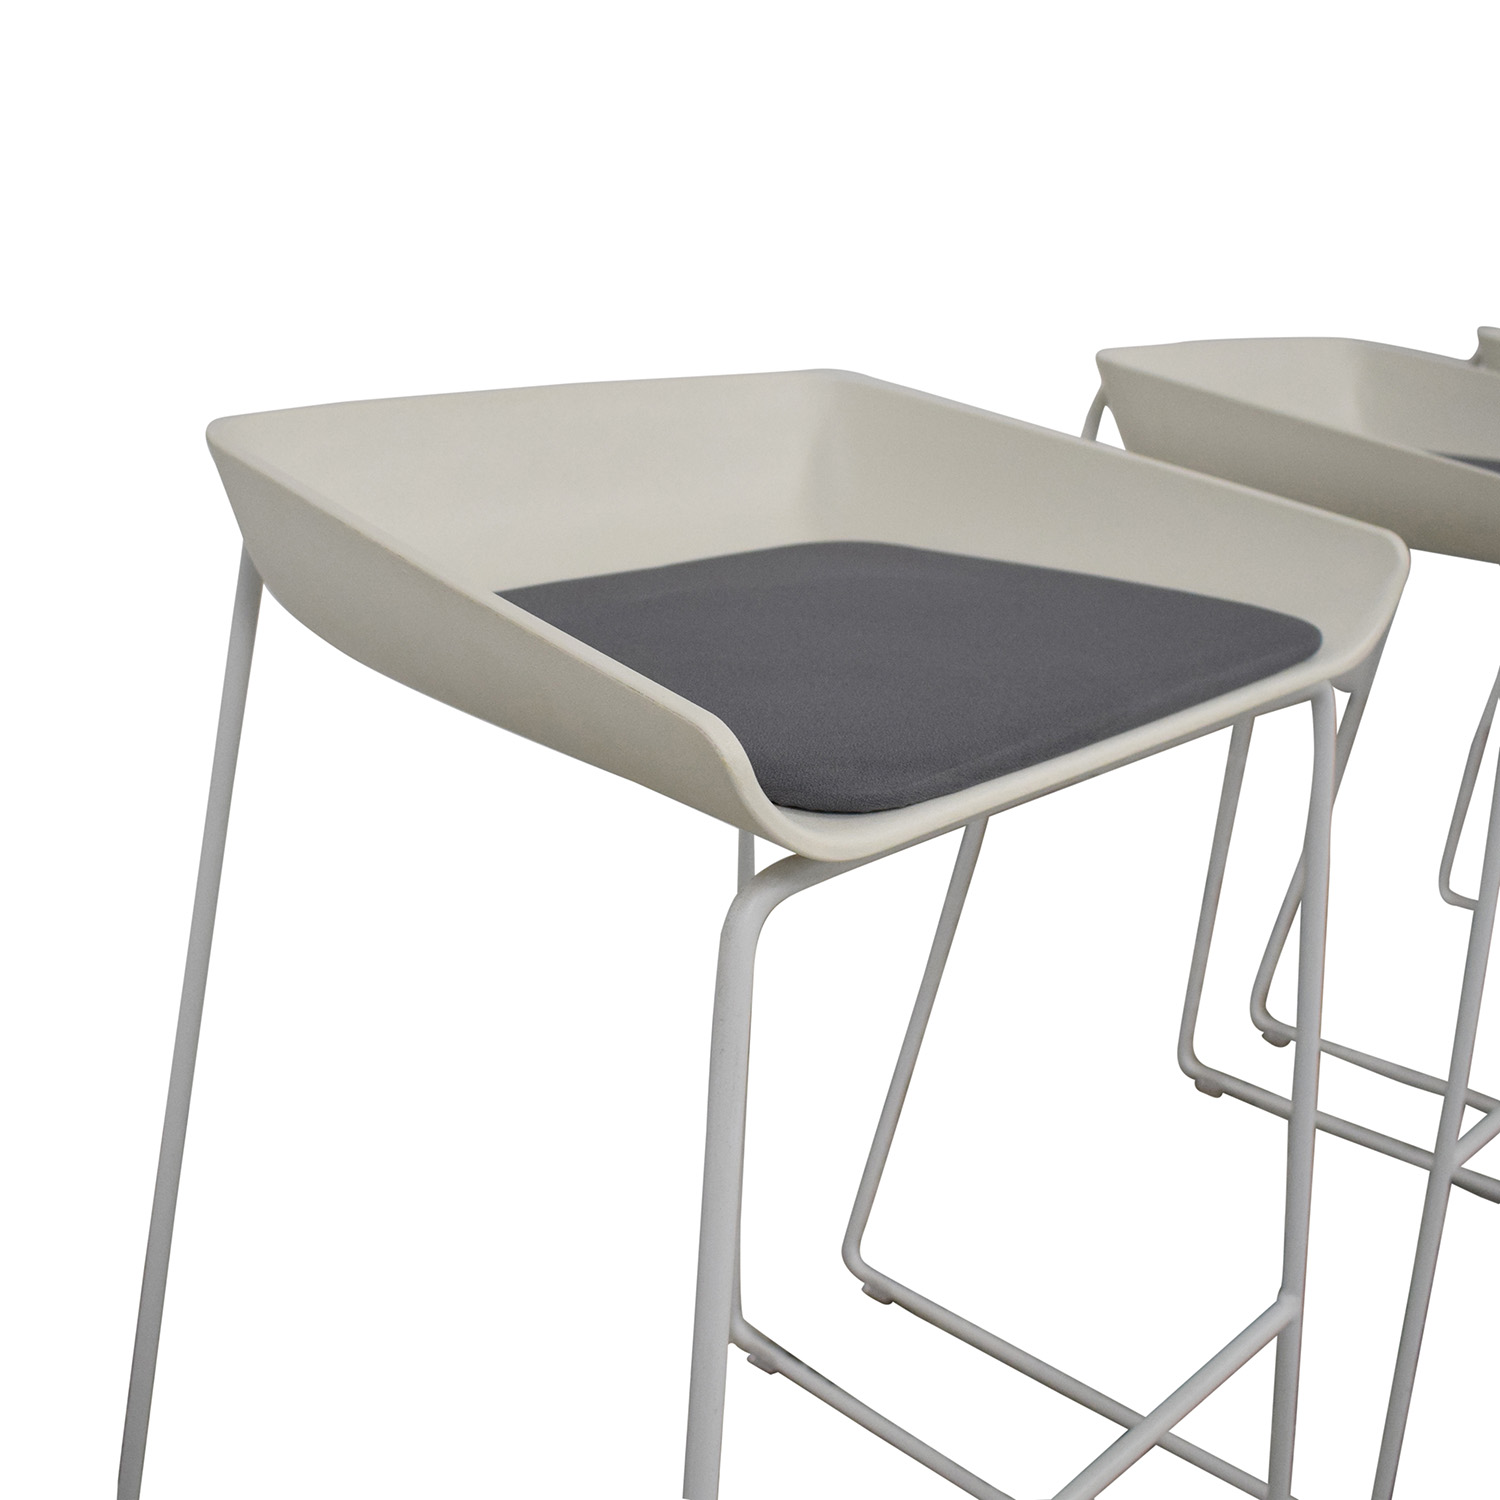 Steelcase Steelcase Scoop Modern Stools coupon